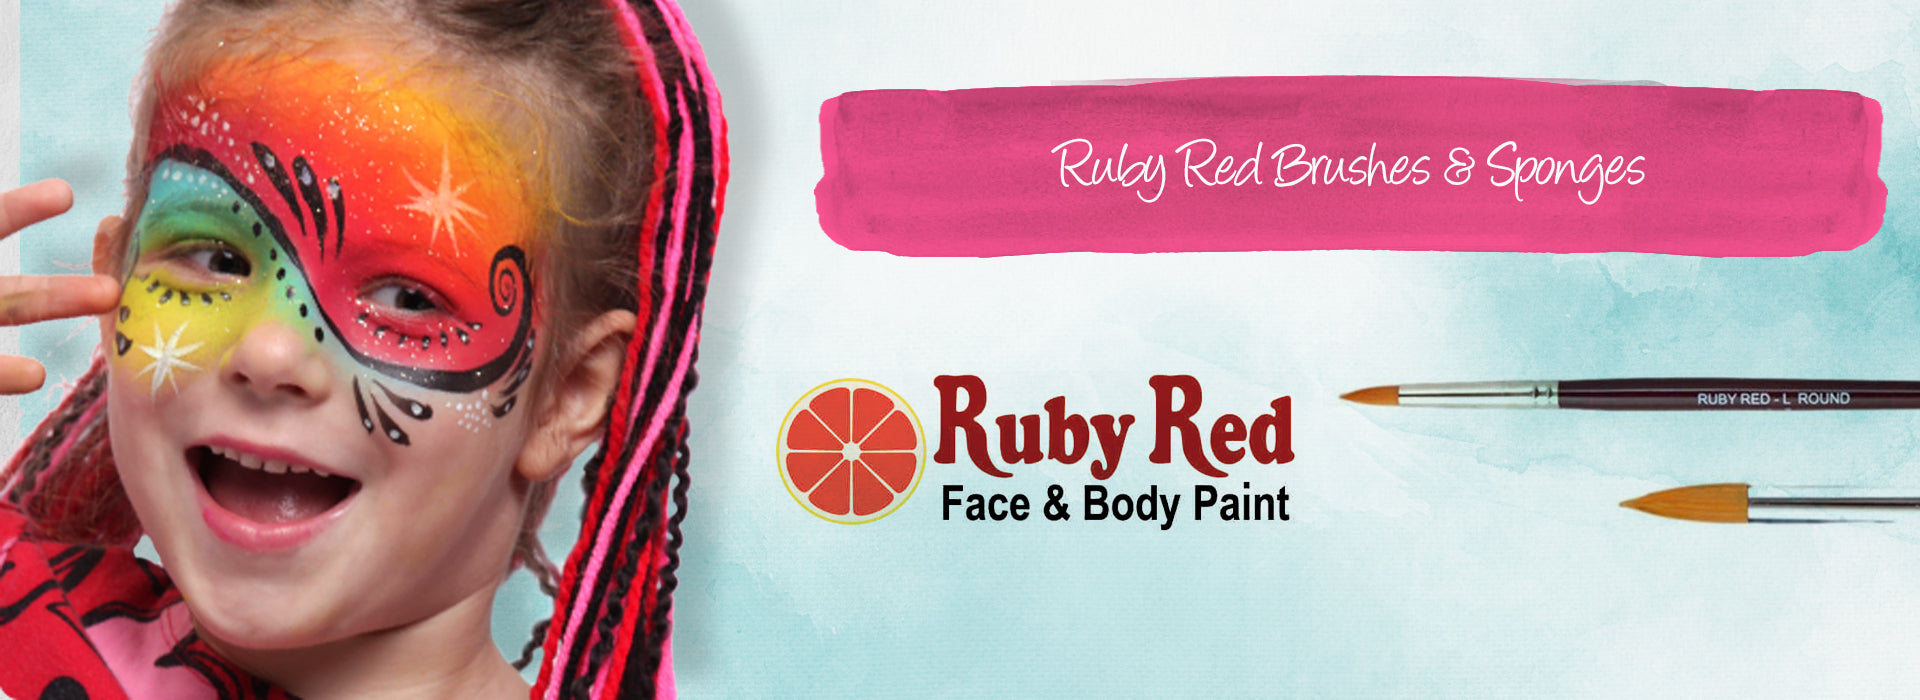 Ruby Red Brushes and Sponges